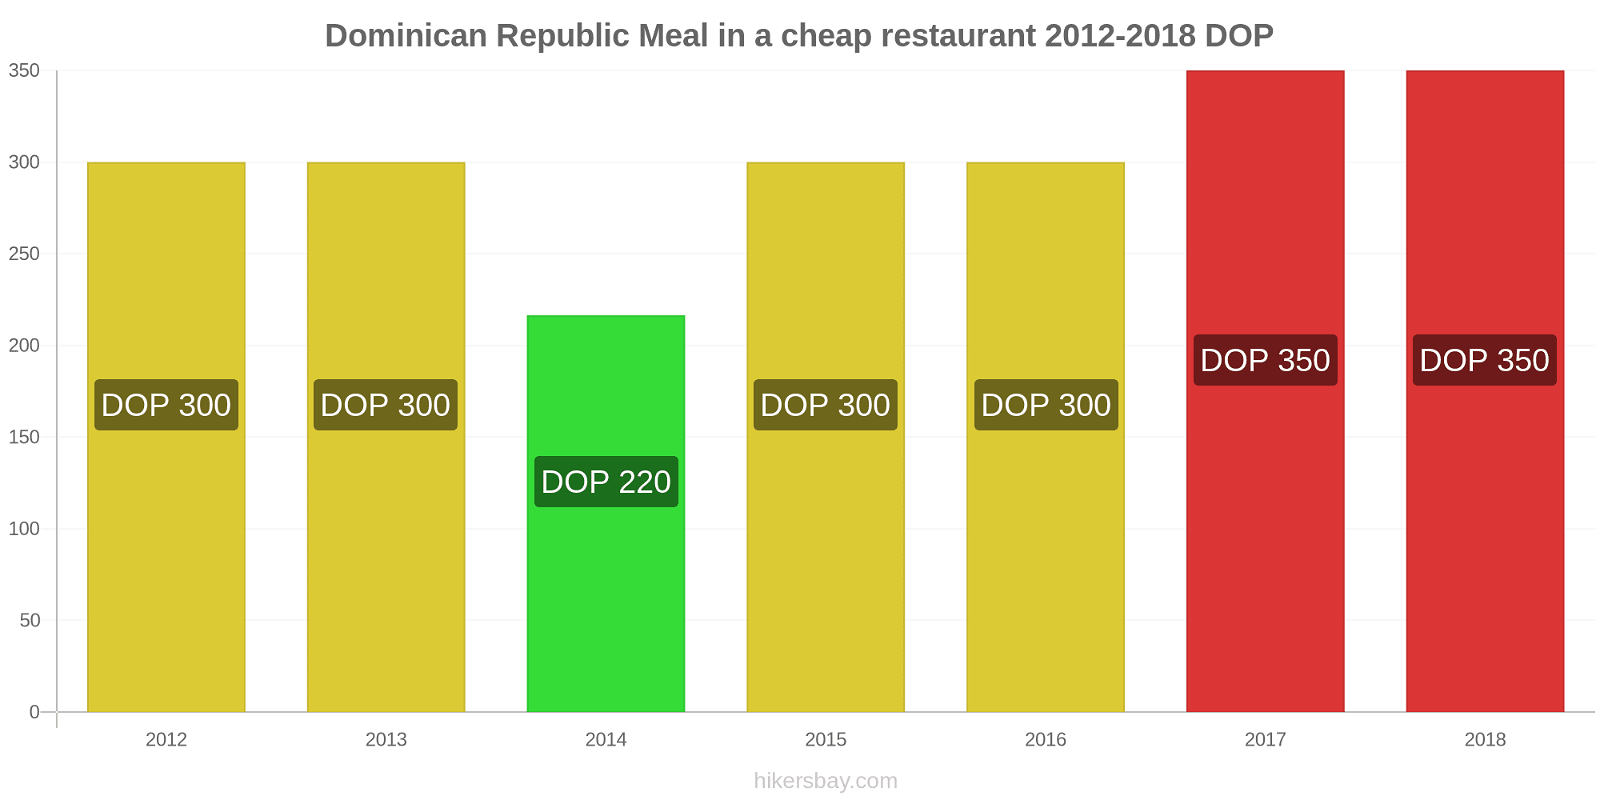 Dominican Republic price changes Meal in a cheap restaurant hikersbay.com